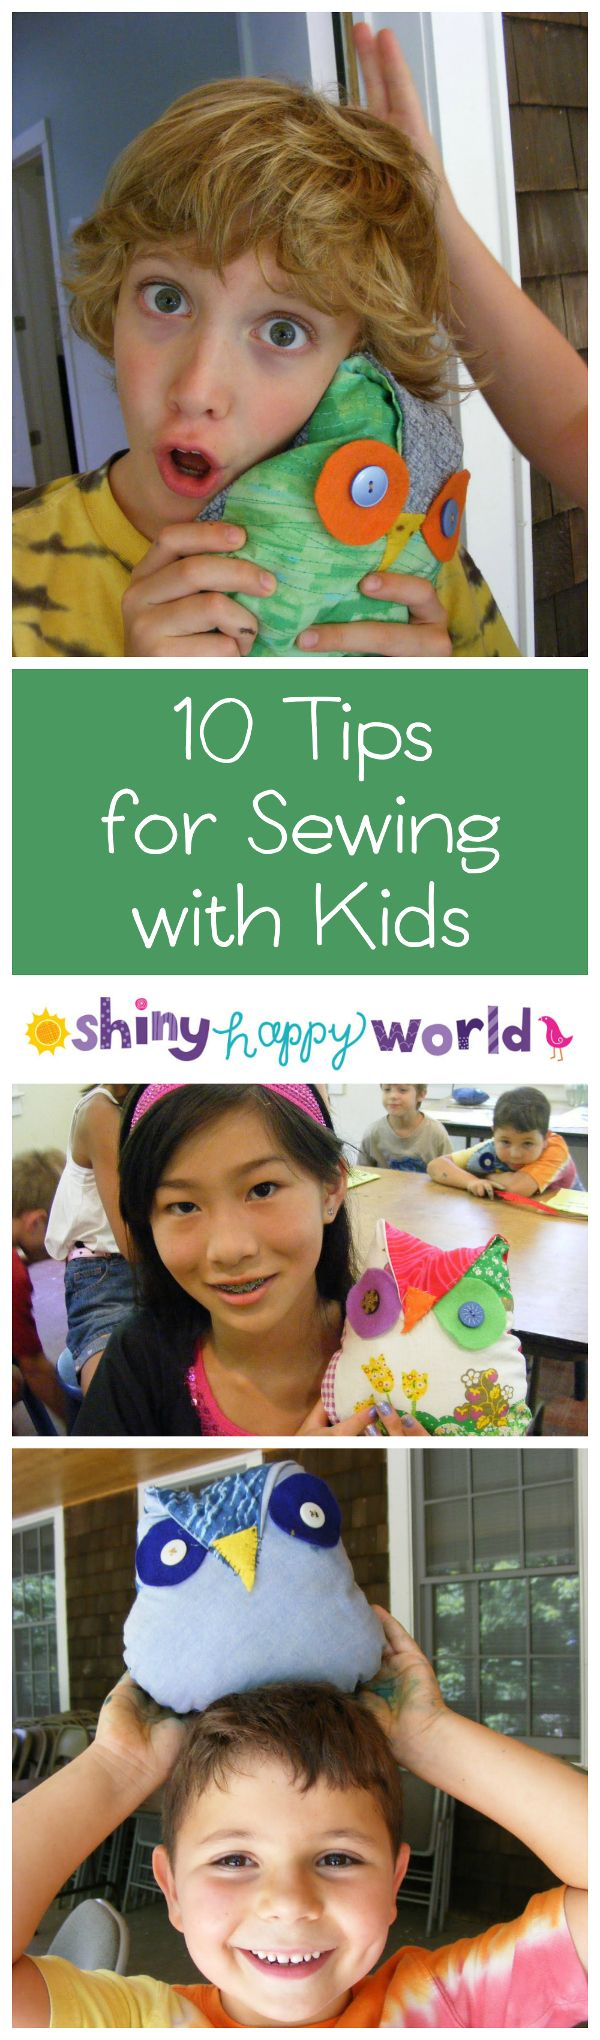 10 Tips for Sewing with Kids from Shiny Happy World